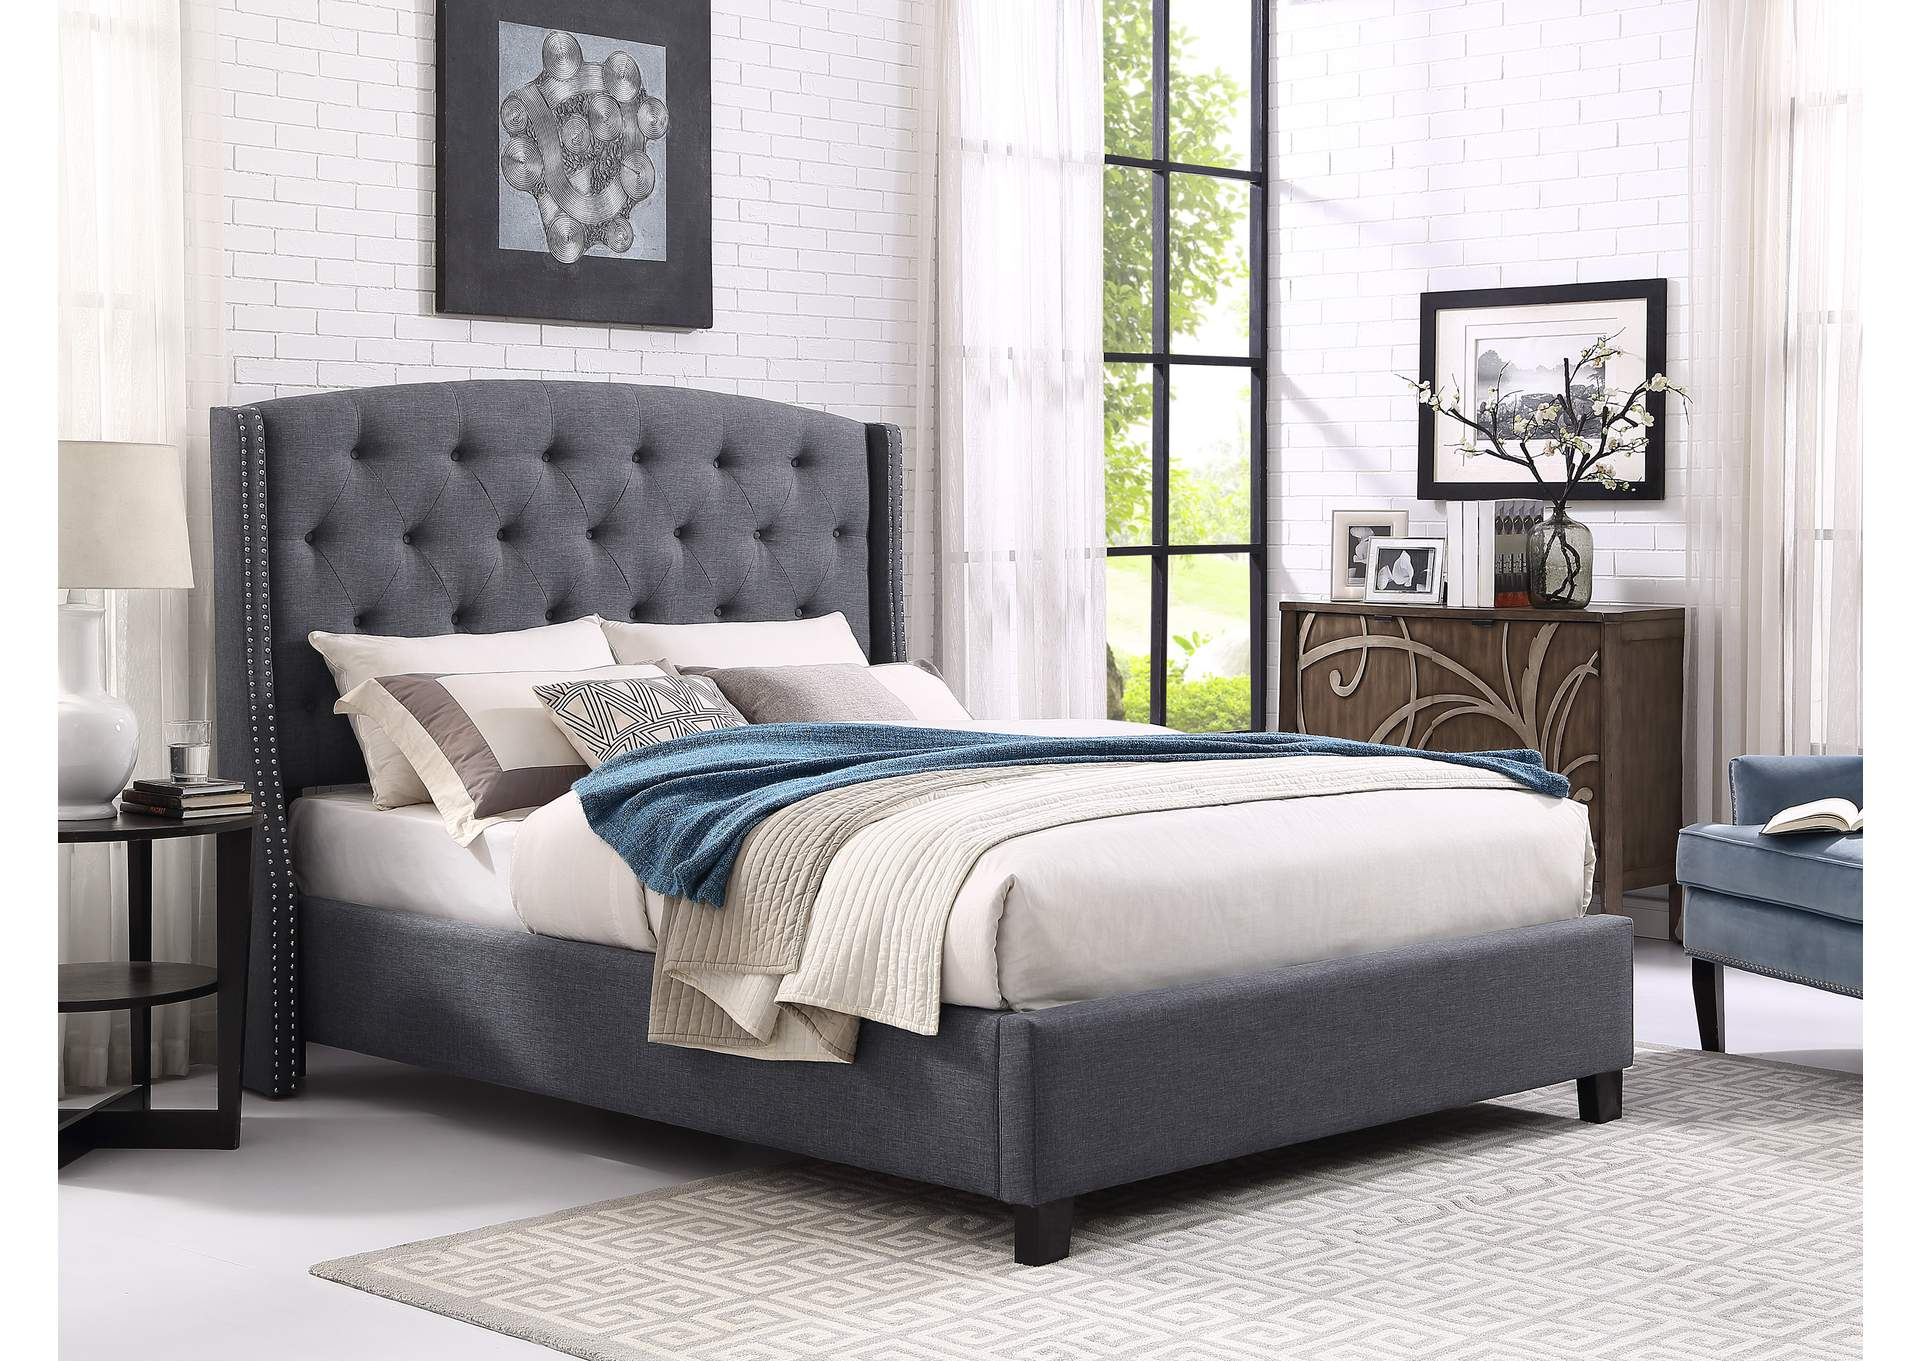 Eva Grey Upholstered Queen Platform Bed Ivan Smith